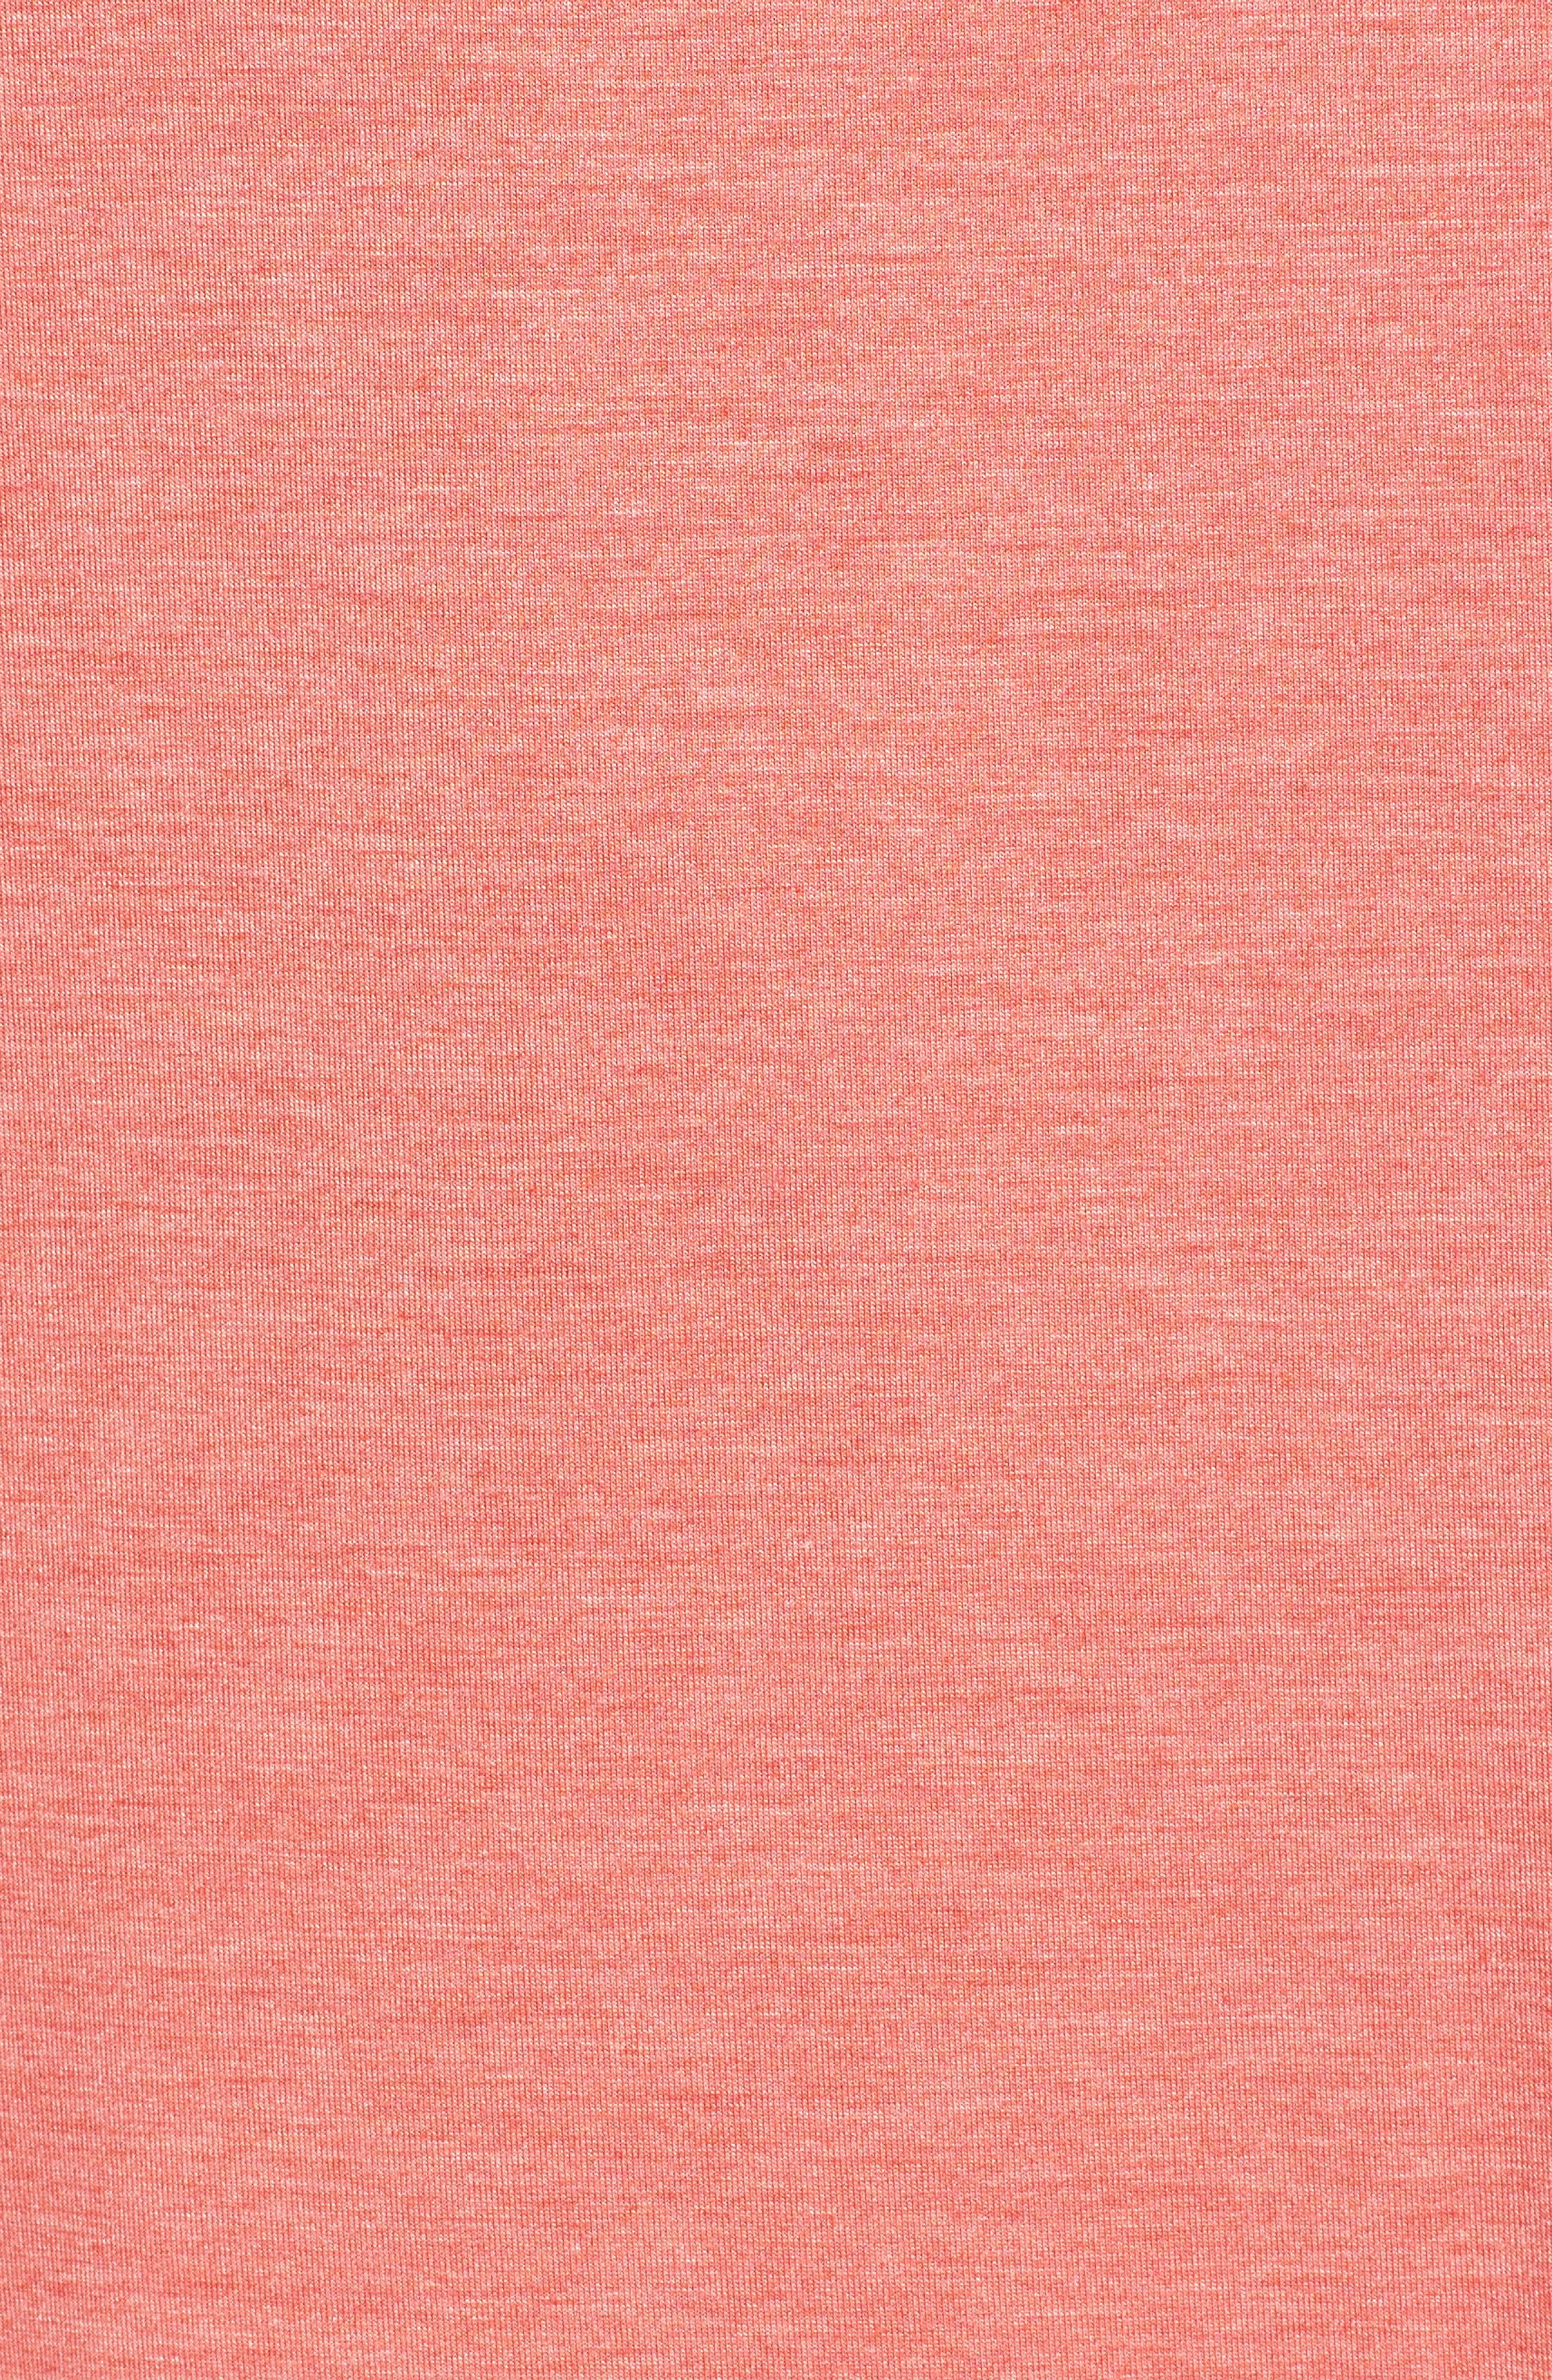 Feathers Essential Sleep Shirt,                             Alternate thumbnail 6, color,                             Coral